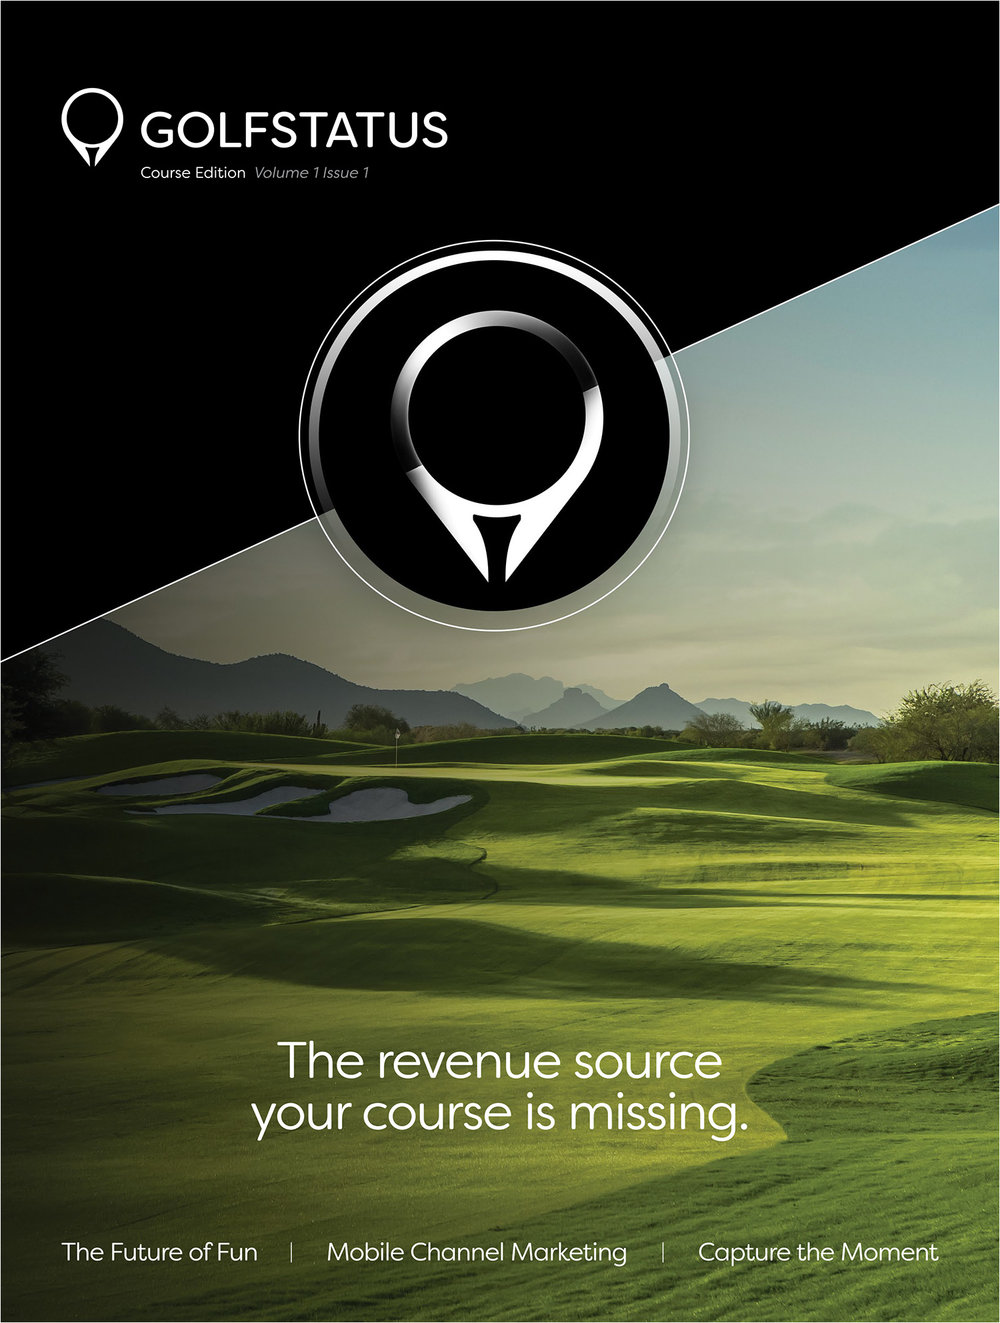 Course Edition Volume 1 Issue 1